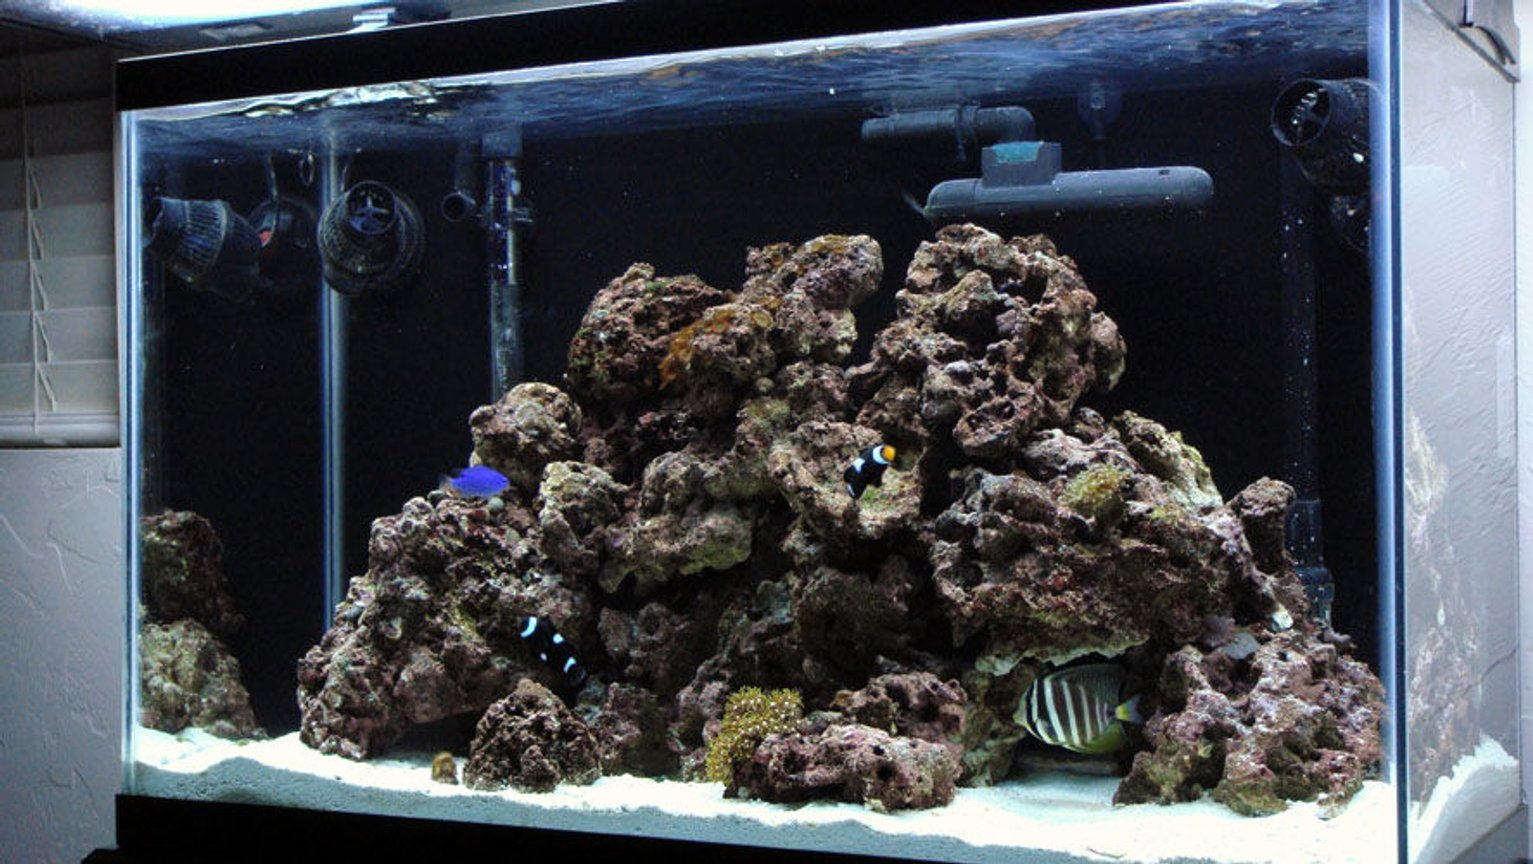 29 gallons saltwater fish tank (mostly fish, little/no live coral) - Just downgraded from a 75 gal. and put everything is this 29 Gallon - Button Polyps, Green Star Polyps, Green Ricordia, Trumpet, Frogspawn, Assorterd Mushrooms and Zoos. All are still fairly small as they were bought as frags and are only a couple of months old I plan to add alot more soon. Mated Pair of Black Ocellaris Clowns,a Sailfin Tang (for now) and a Blue Damsel. Cleaner Shrimp, Coral Banded Shrimp, Nassarius Snails, Nerite Snails, Hermits.